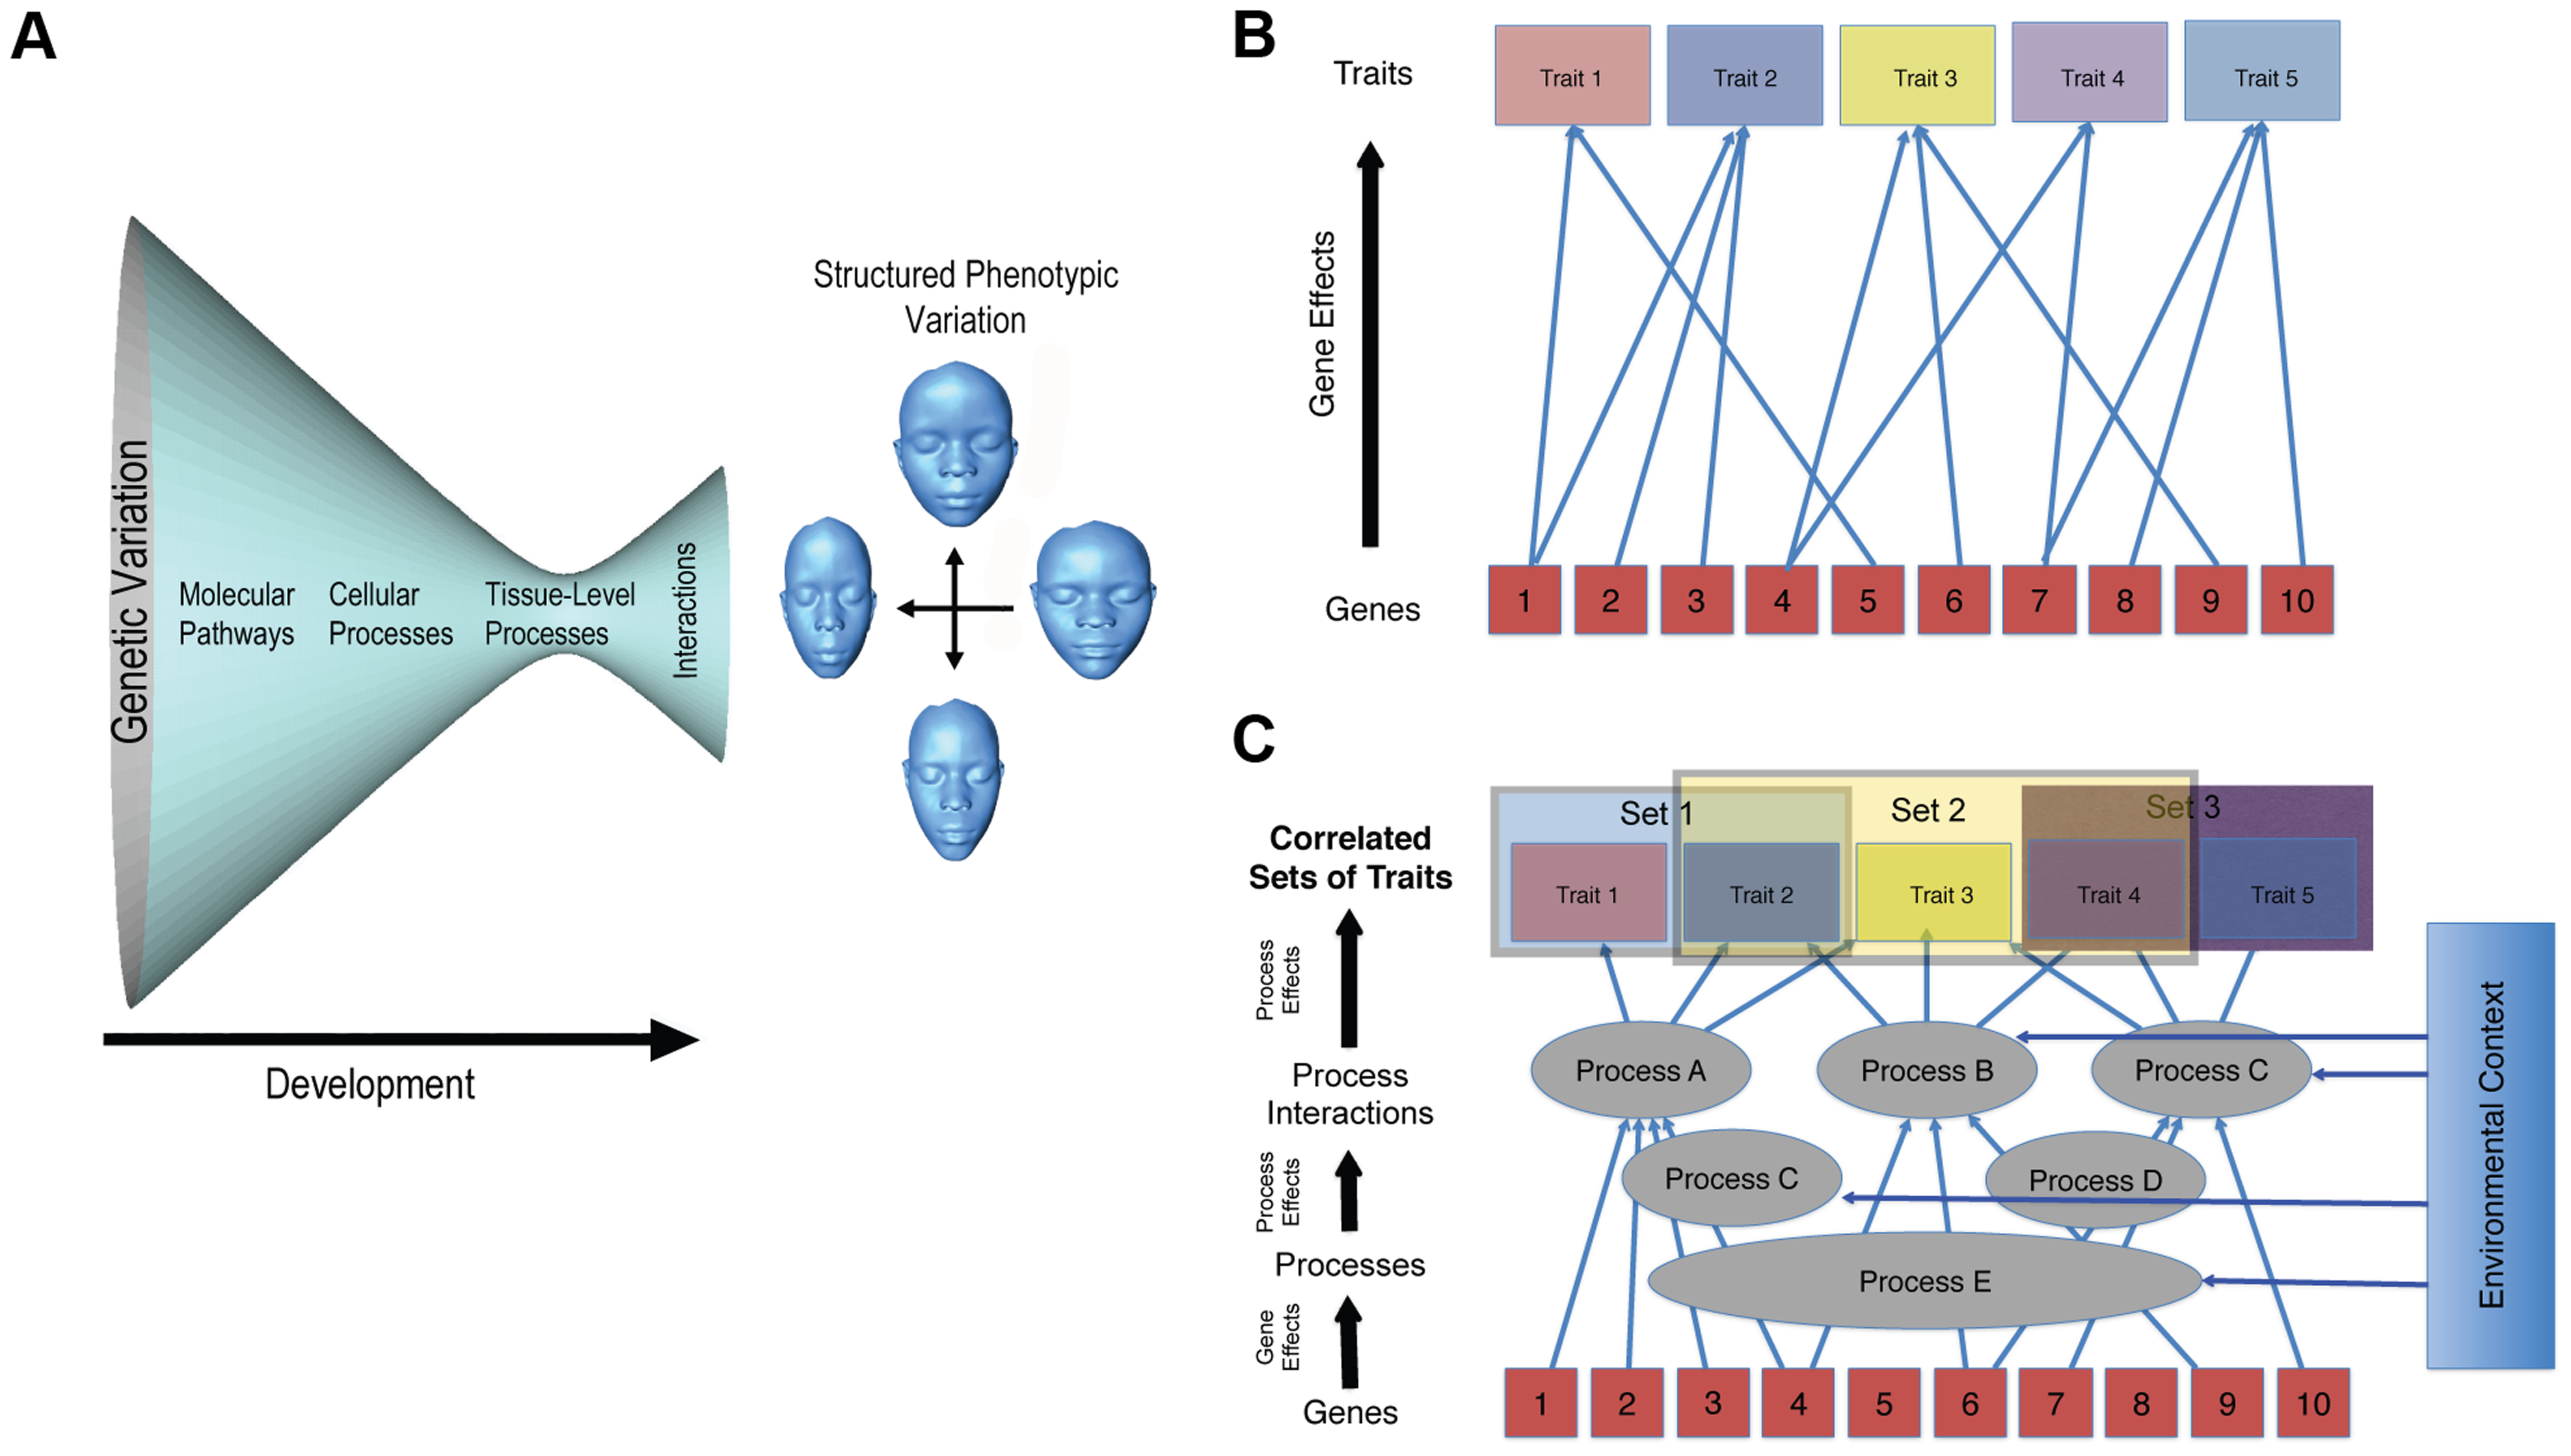 Two complementary depictions of the developmental architecture underlying the genotype–phenotype map for complex traits.